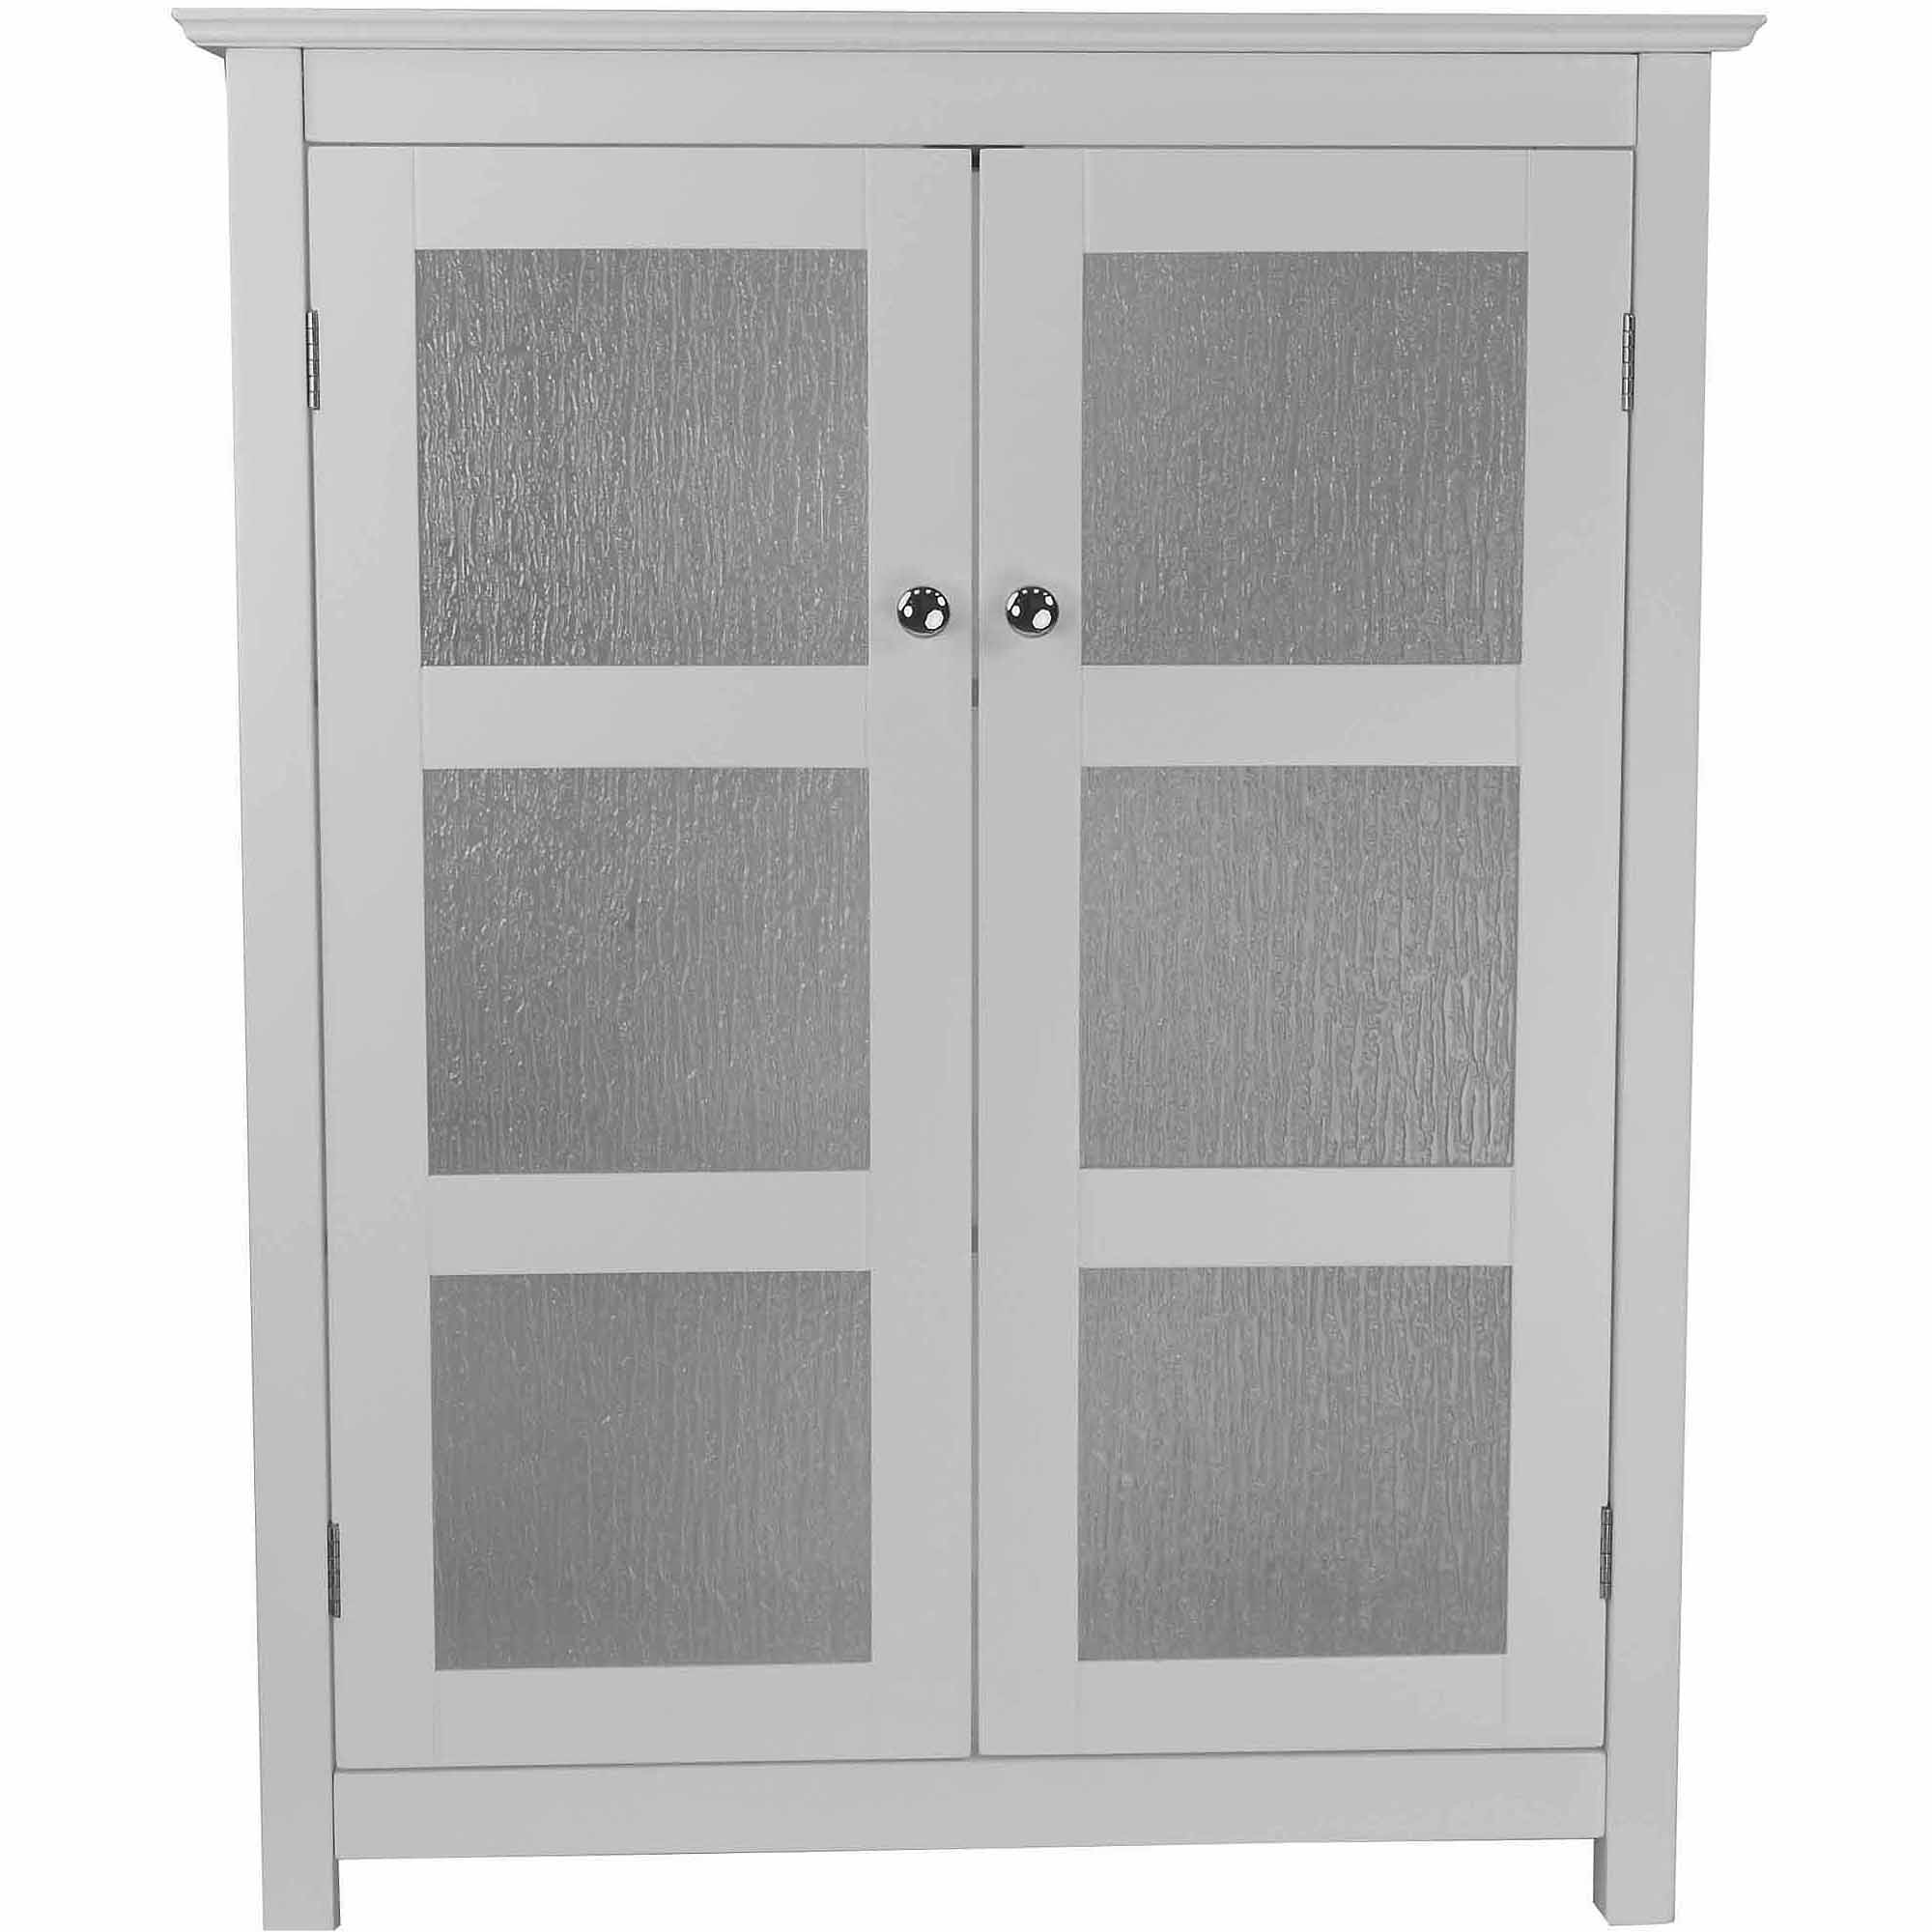 Superior Connor Floor Cabinet With 2 Glass Doors, White   Walmart.com